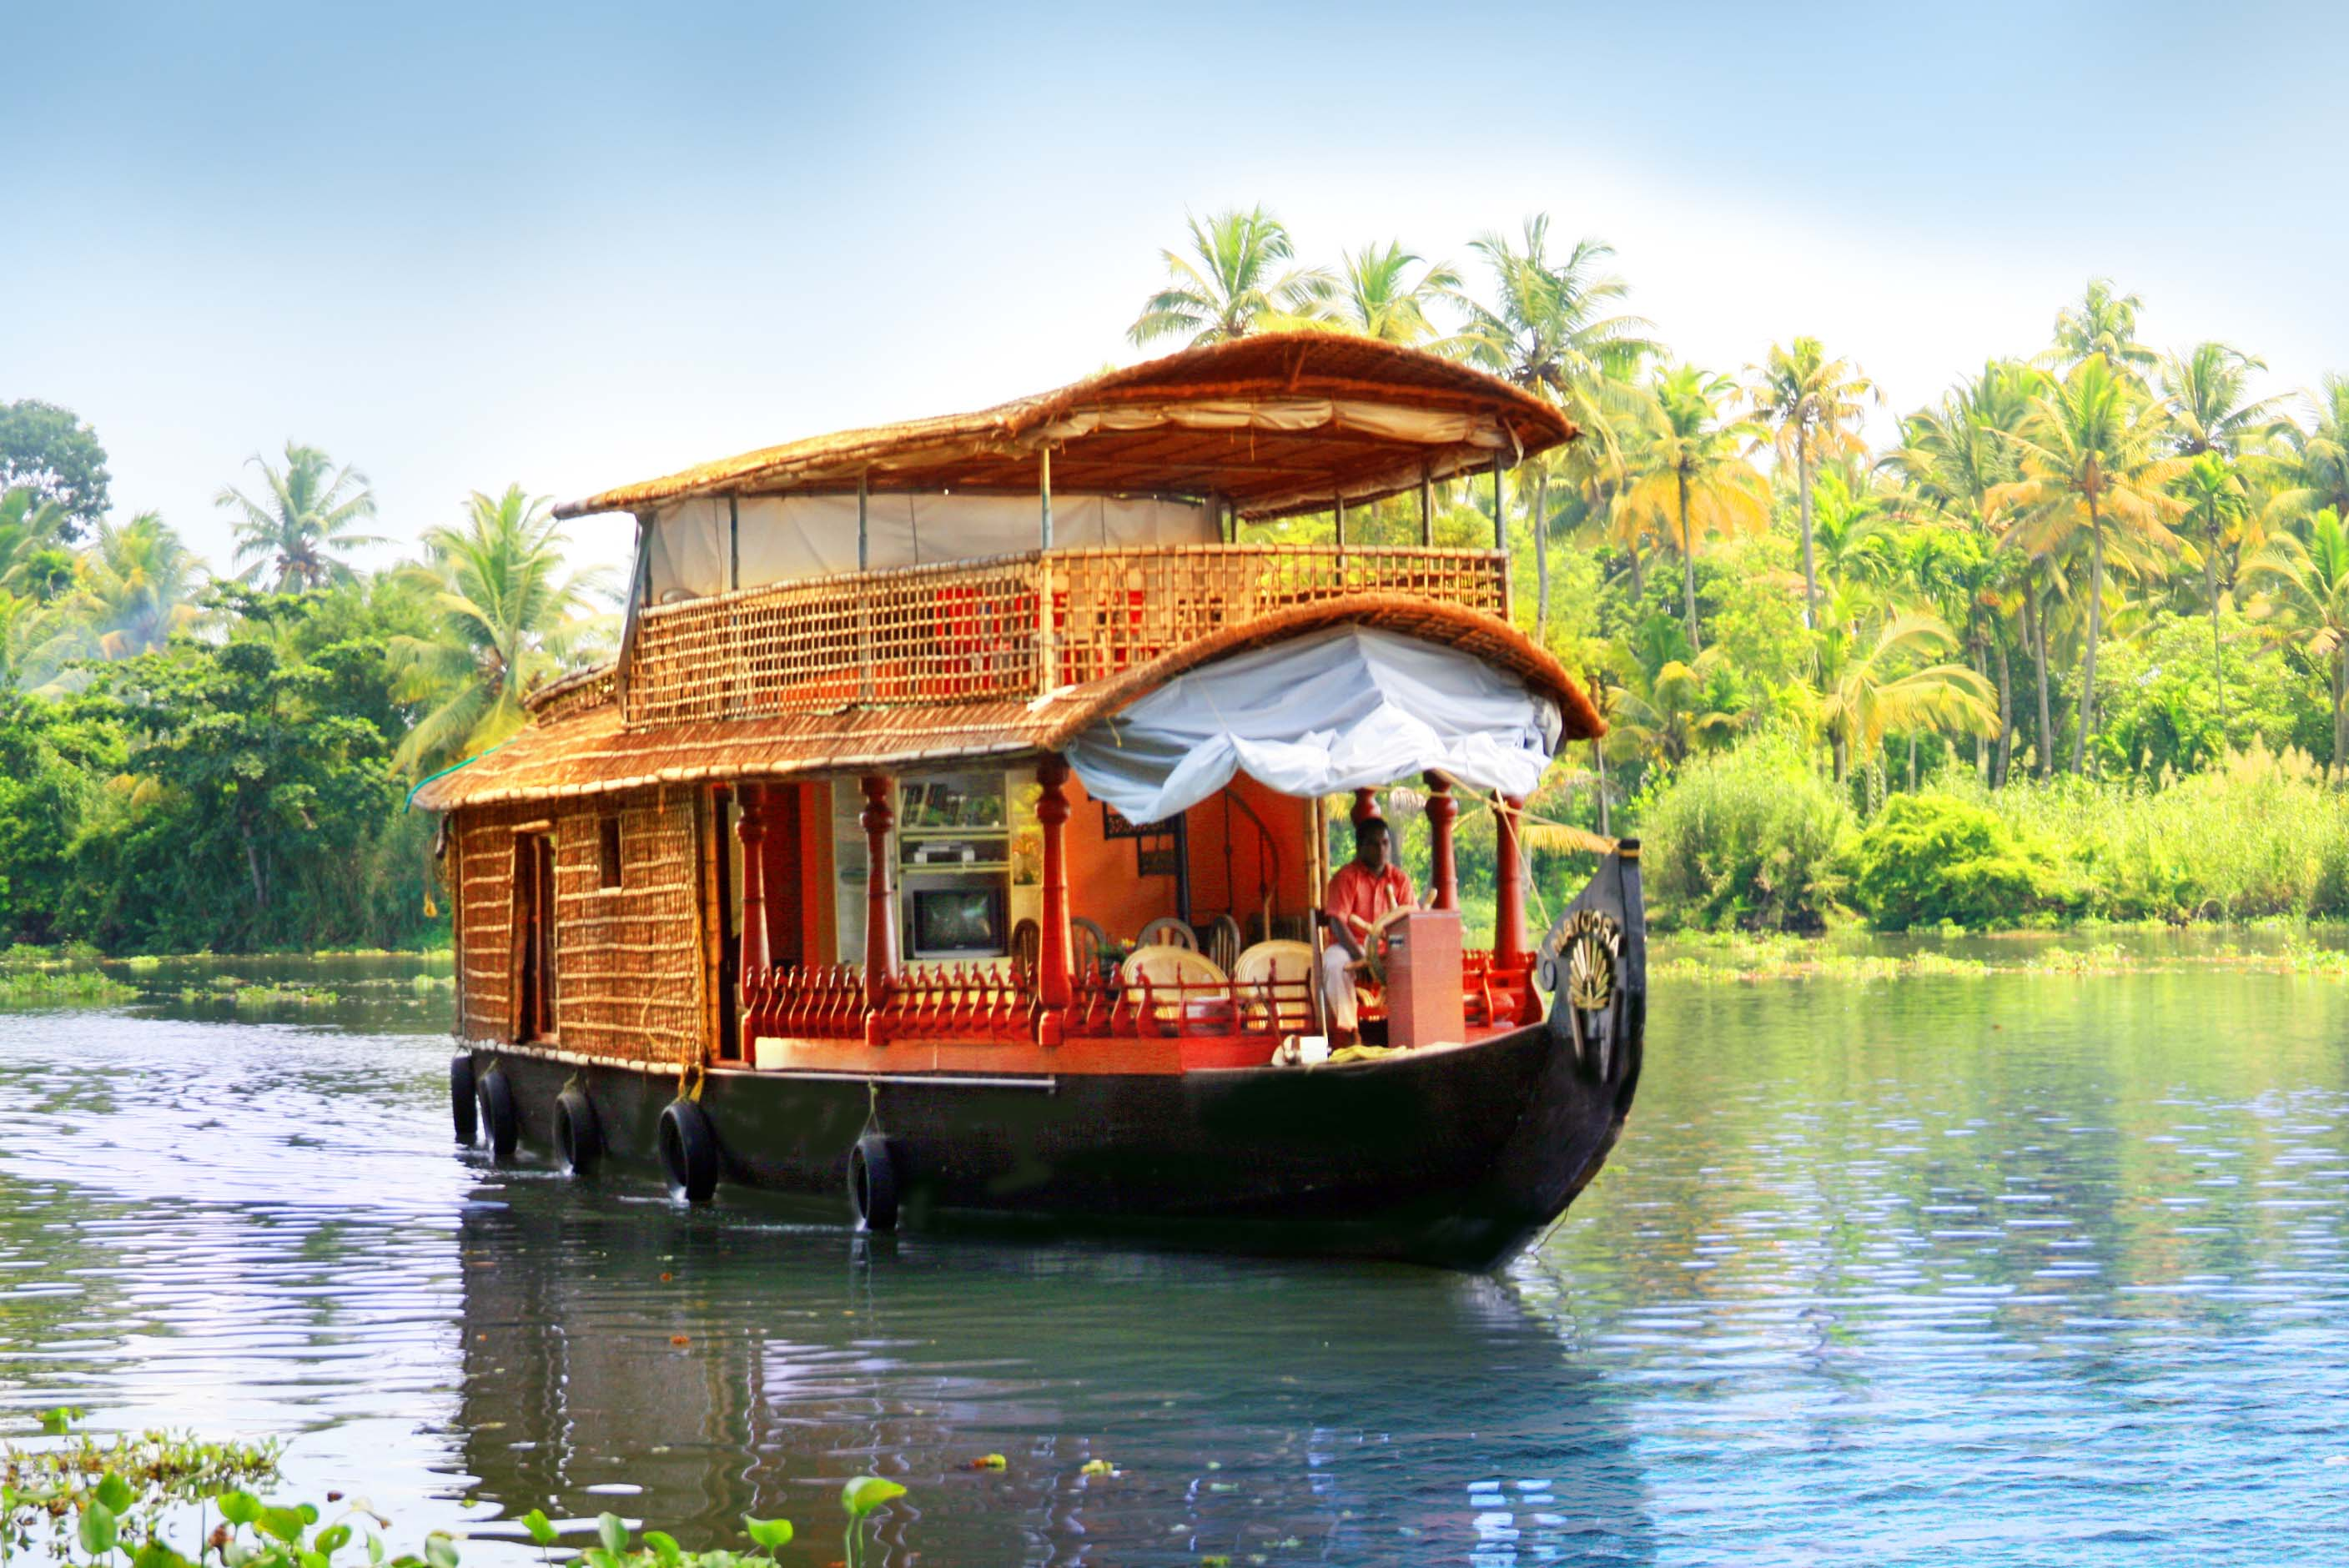 kerala tourism Kerala, frontiered by the western ghats in the east and the arabian sea in the west is one of the most visited tourist places kerala is a land where you can find tranquility, spirituality, adventure and bliss.